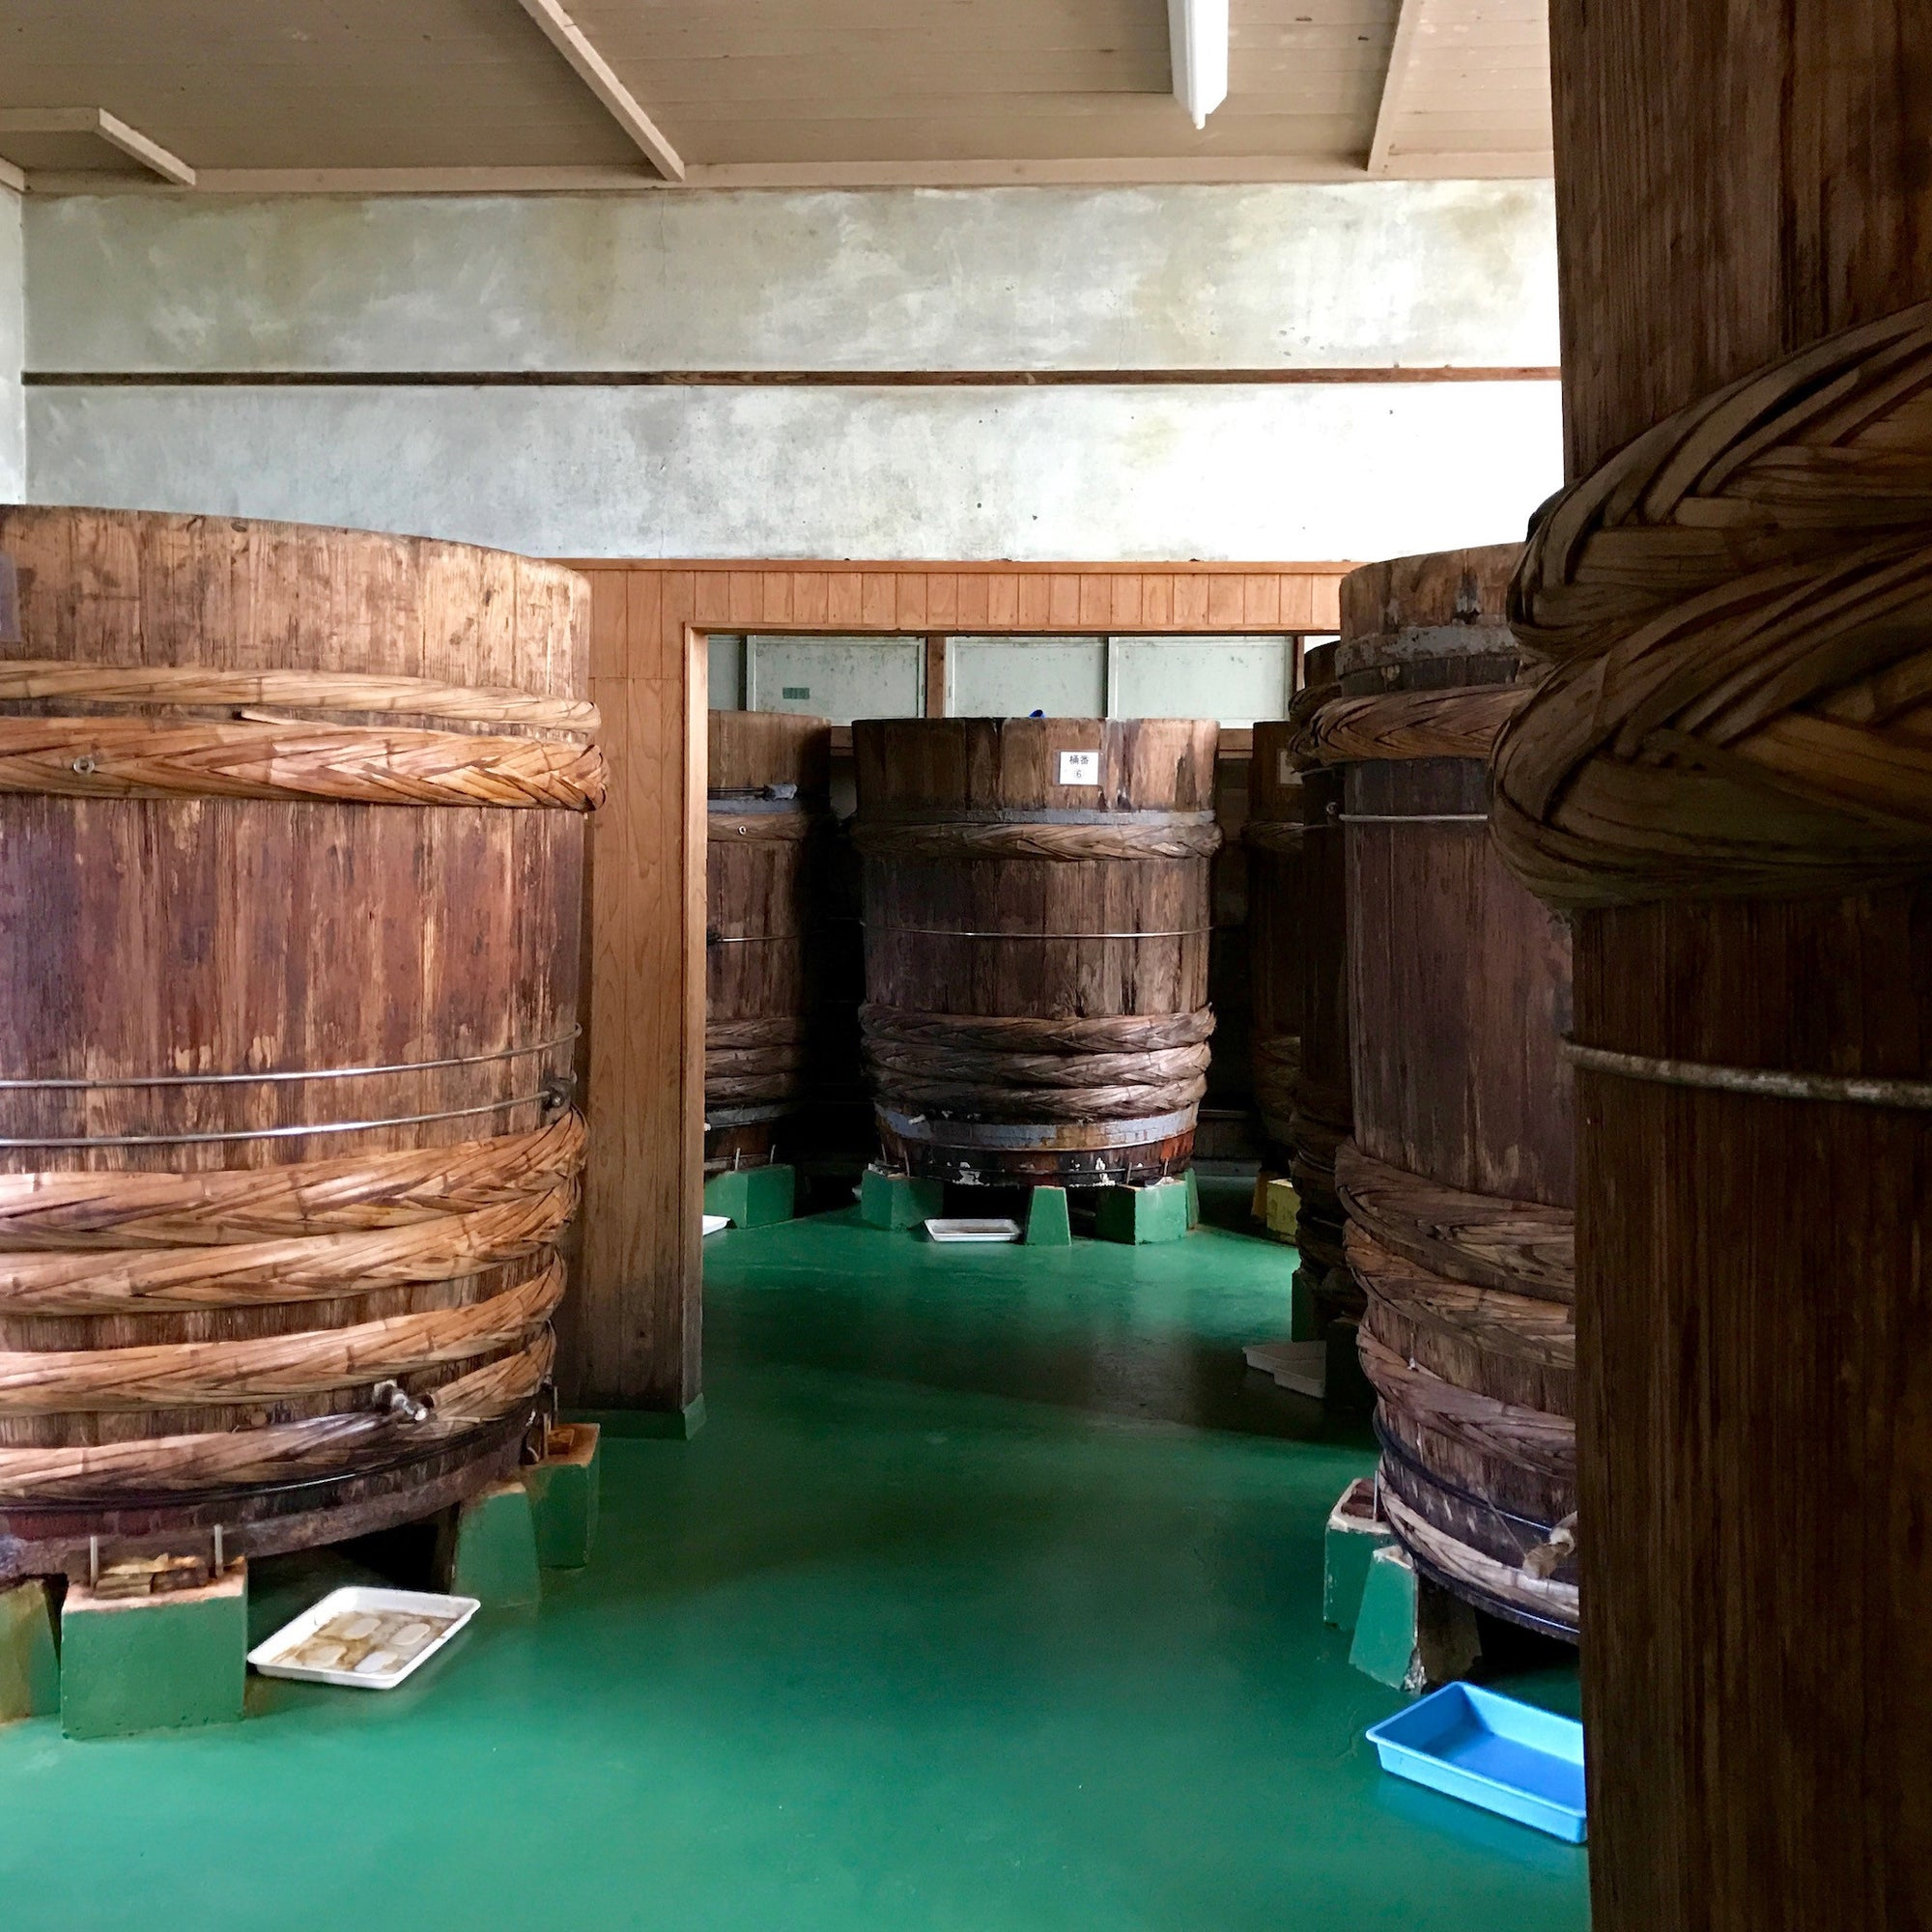 The Importance of Cedar Barrels – it's what's in the barrels that counts